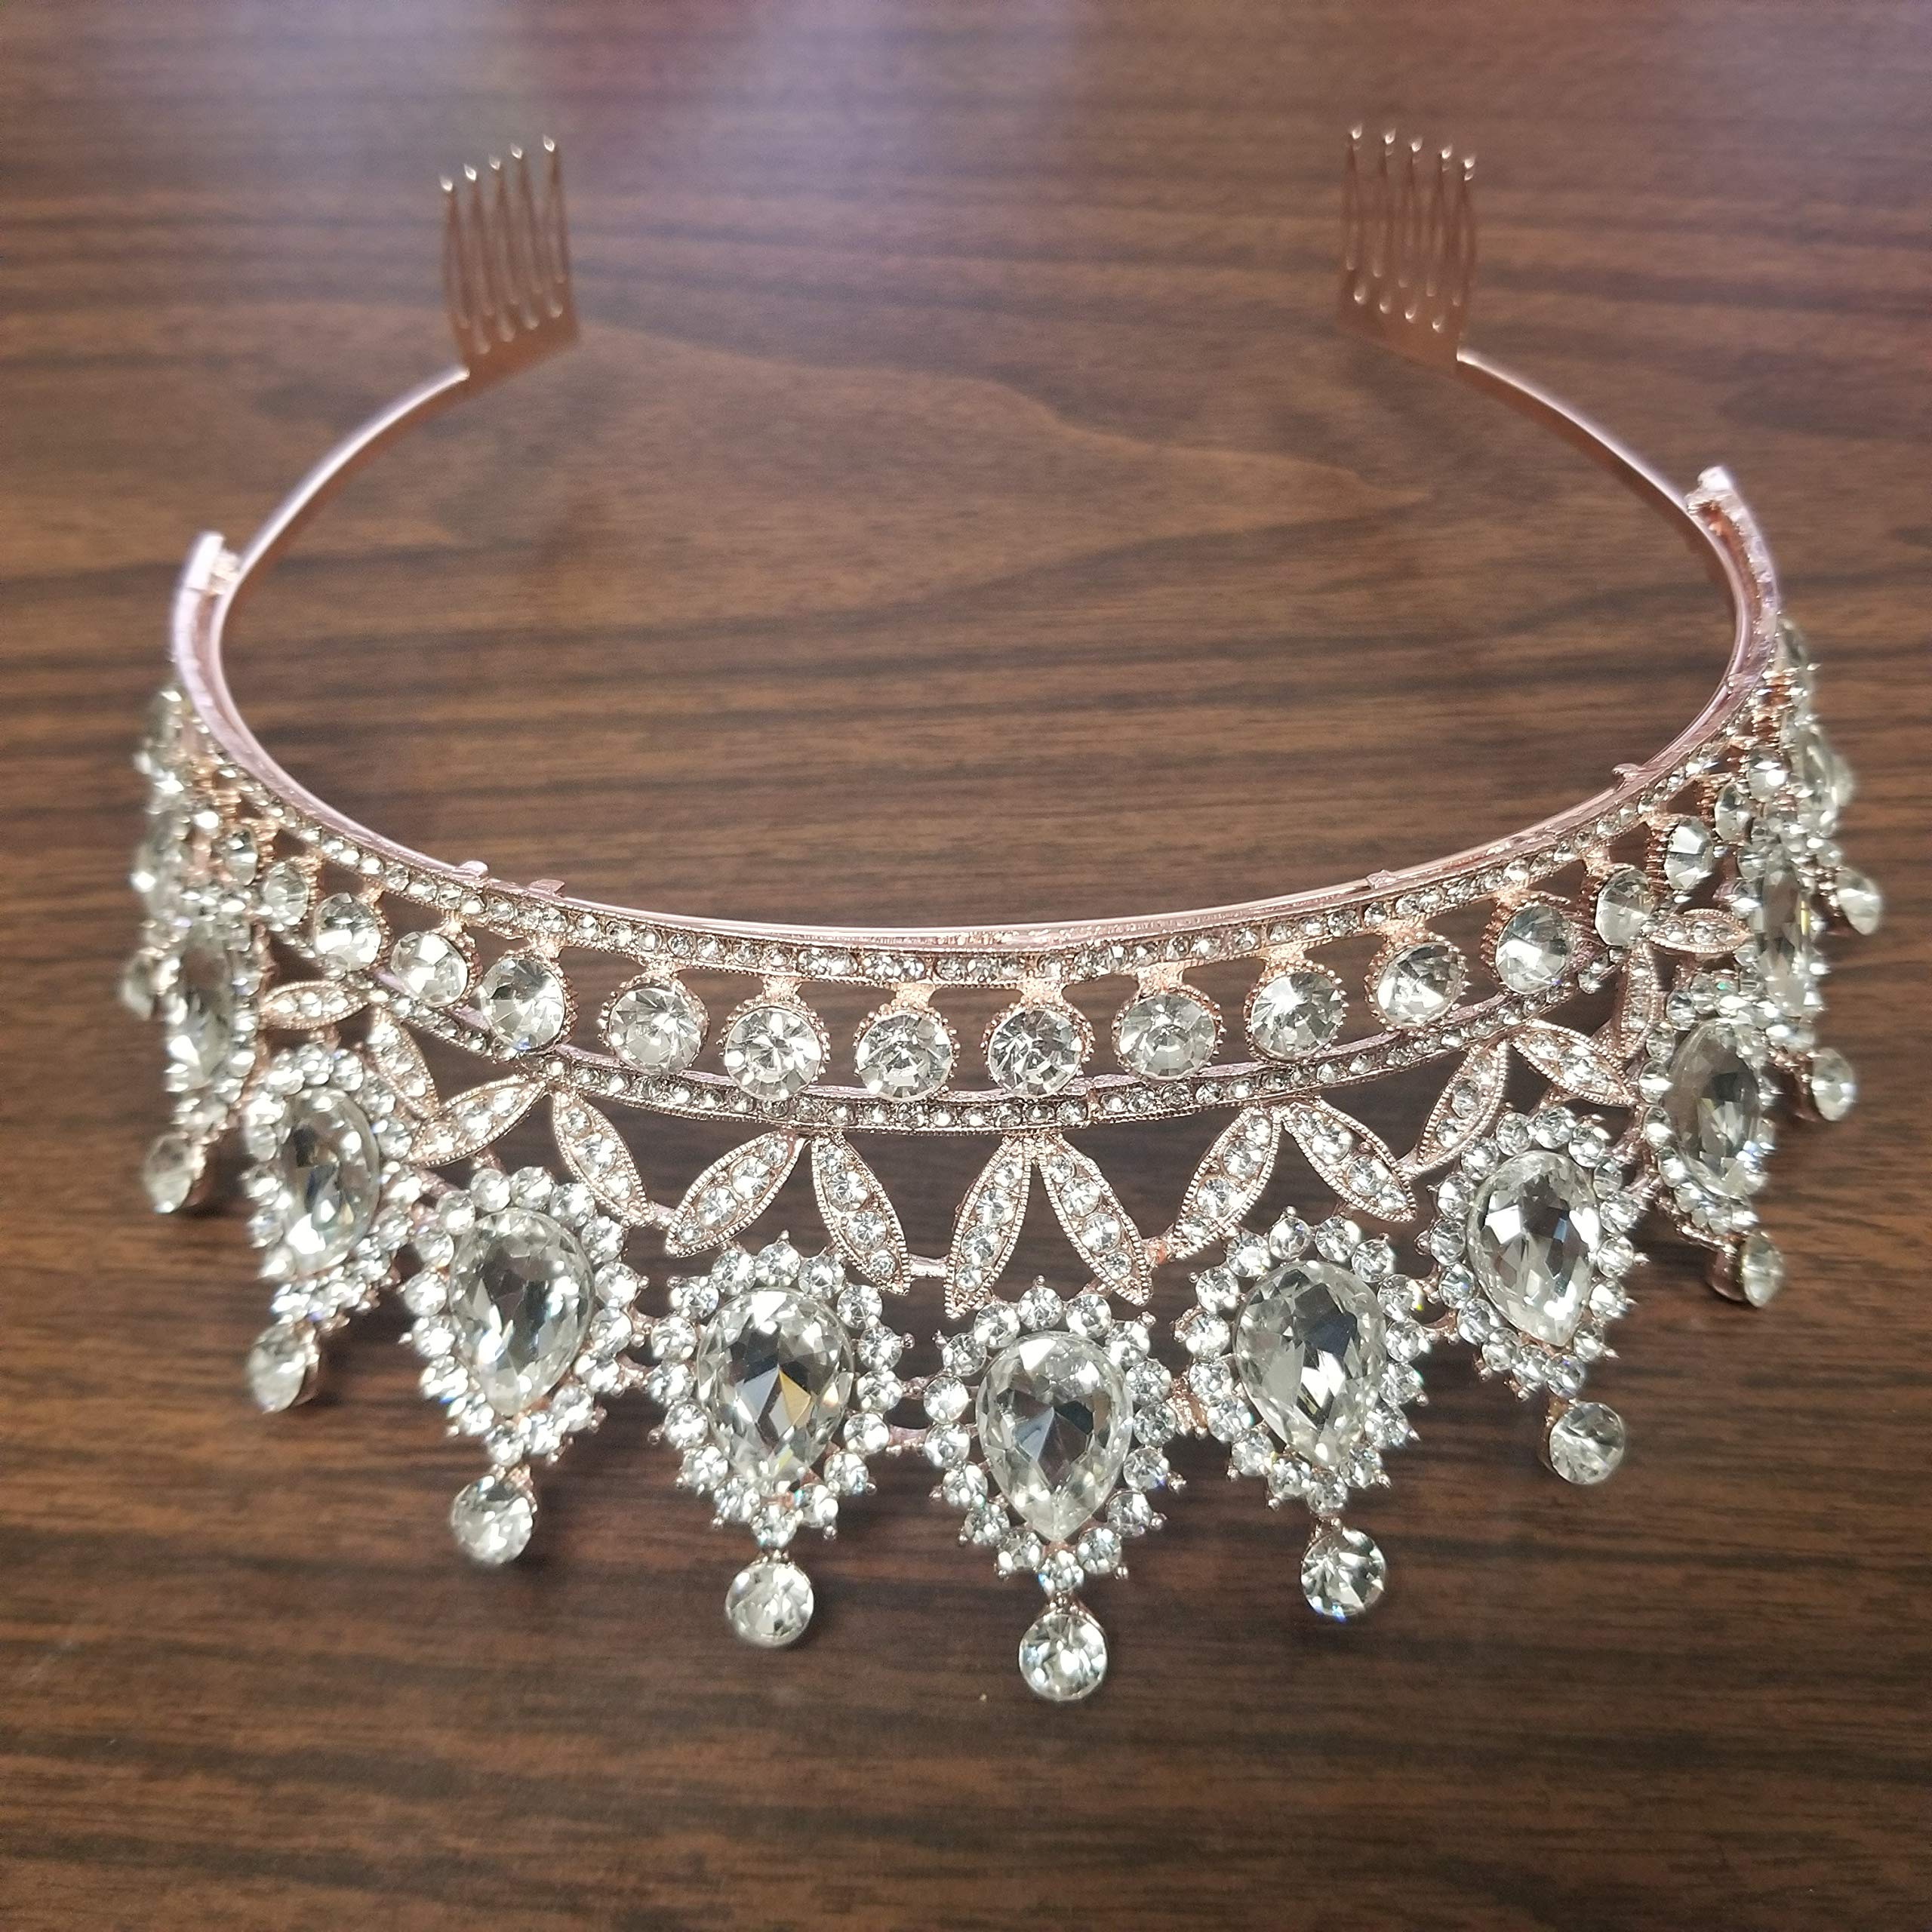 Weddingtopia Crystal Princess Pageant Rose Gold Wedding Tiara For Bride Plus Wedding Rhinestone Necklace and Earring Set - Rhinestone Bridal Tiara Crown with side combs (ROSE GOLD CLEAR) by Weddingtopia